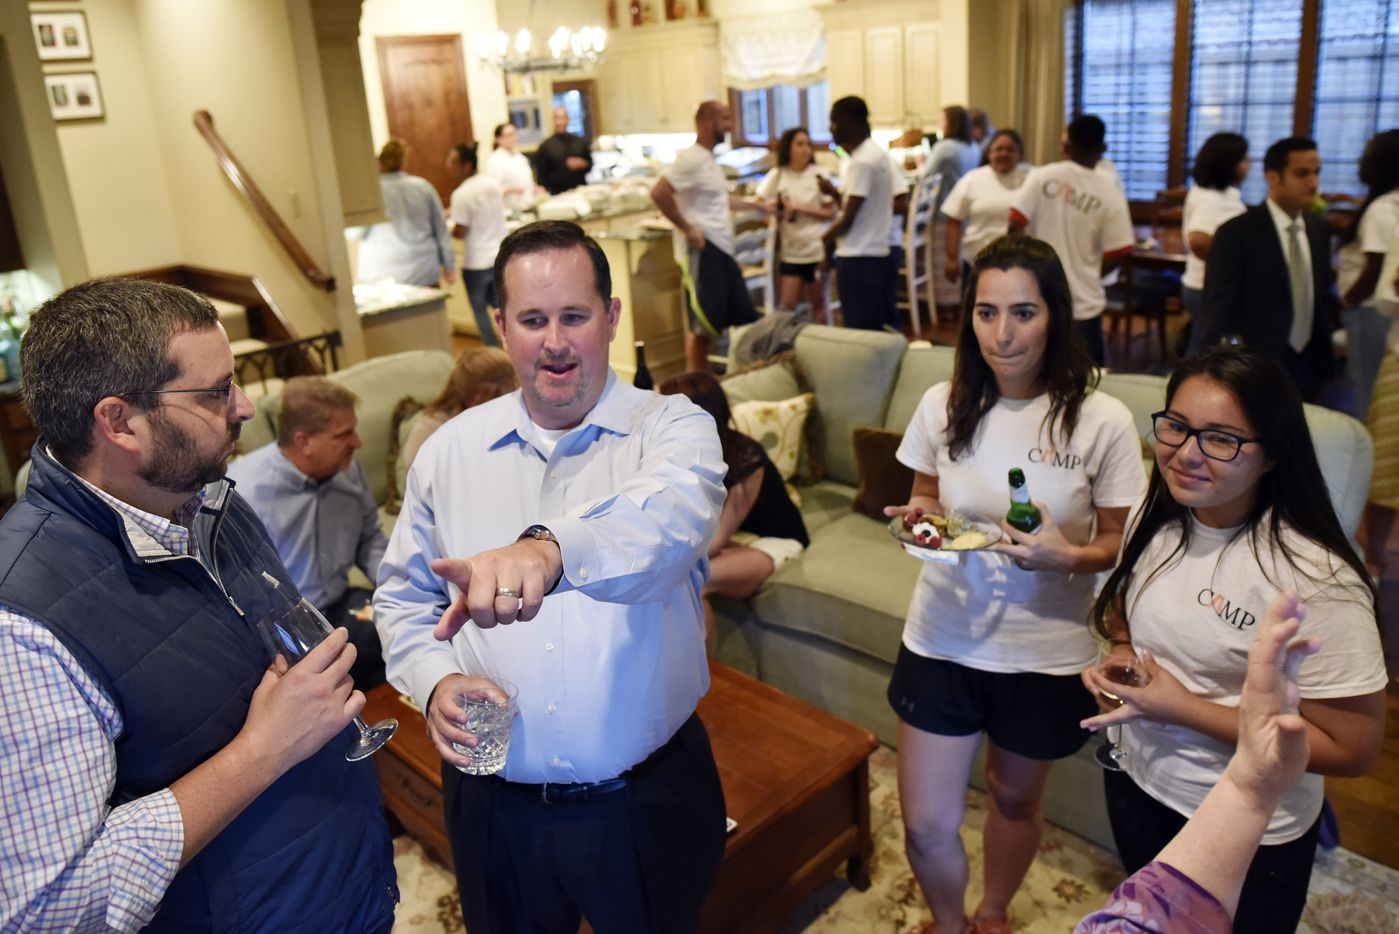 Dustin Marshall points at early results while speaking with campaign volunteers Camila Correa and Azhalia Leal early on during the election watch party at his home.